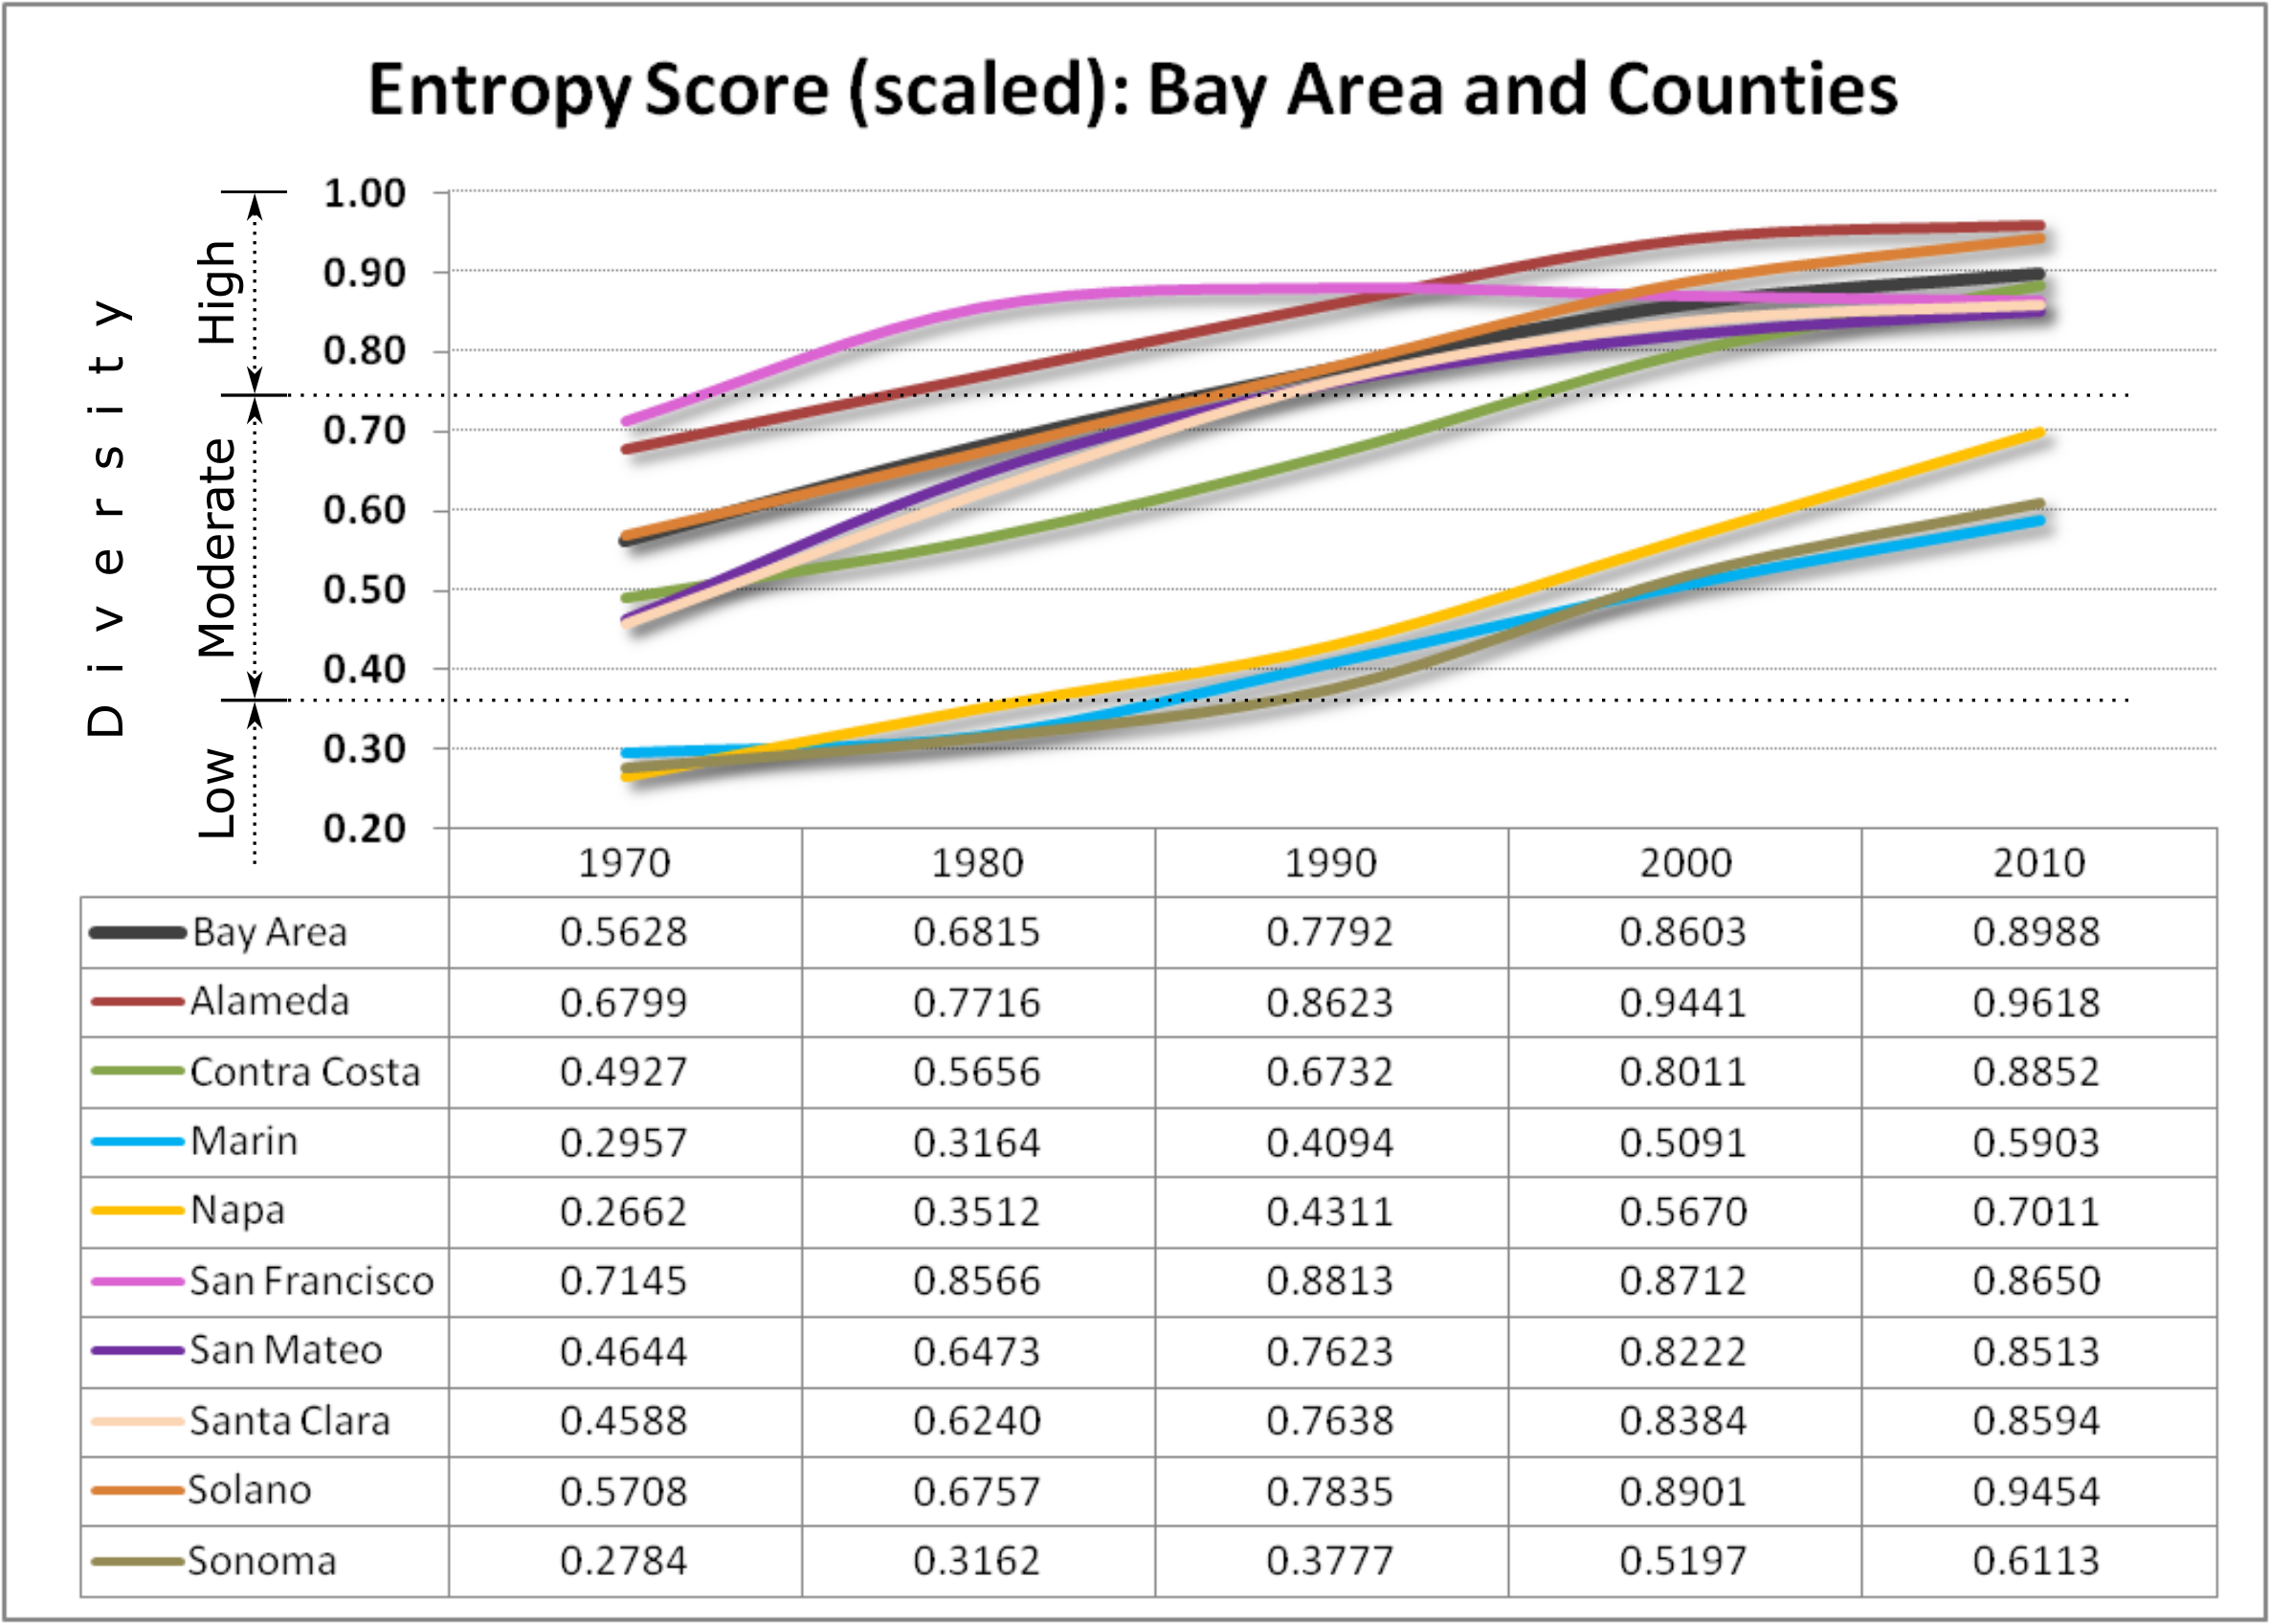 chart shows the entropy scores disaggregated by county, but also for the entire Bay Area, over time.